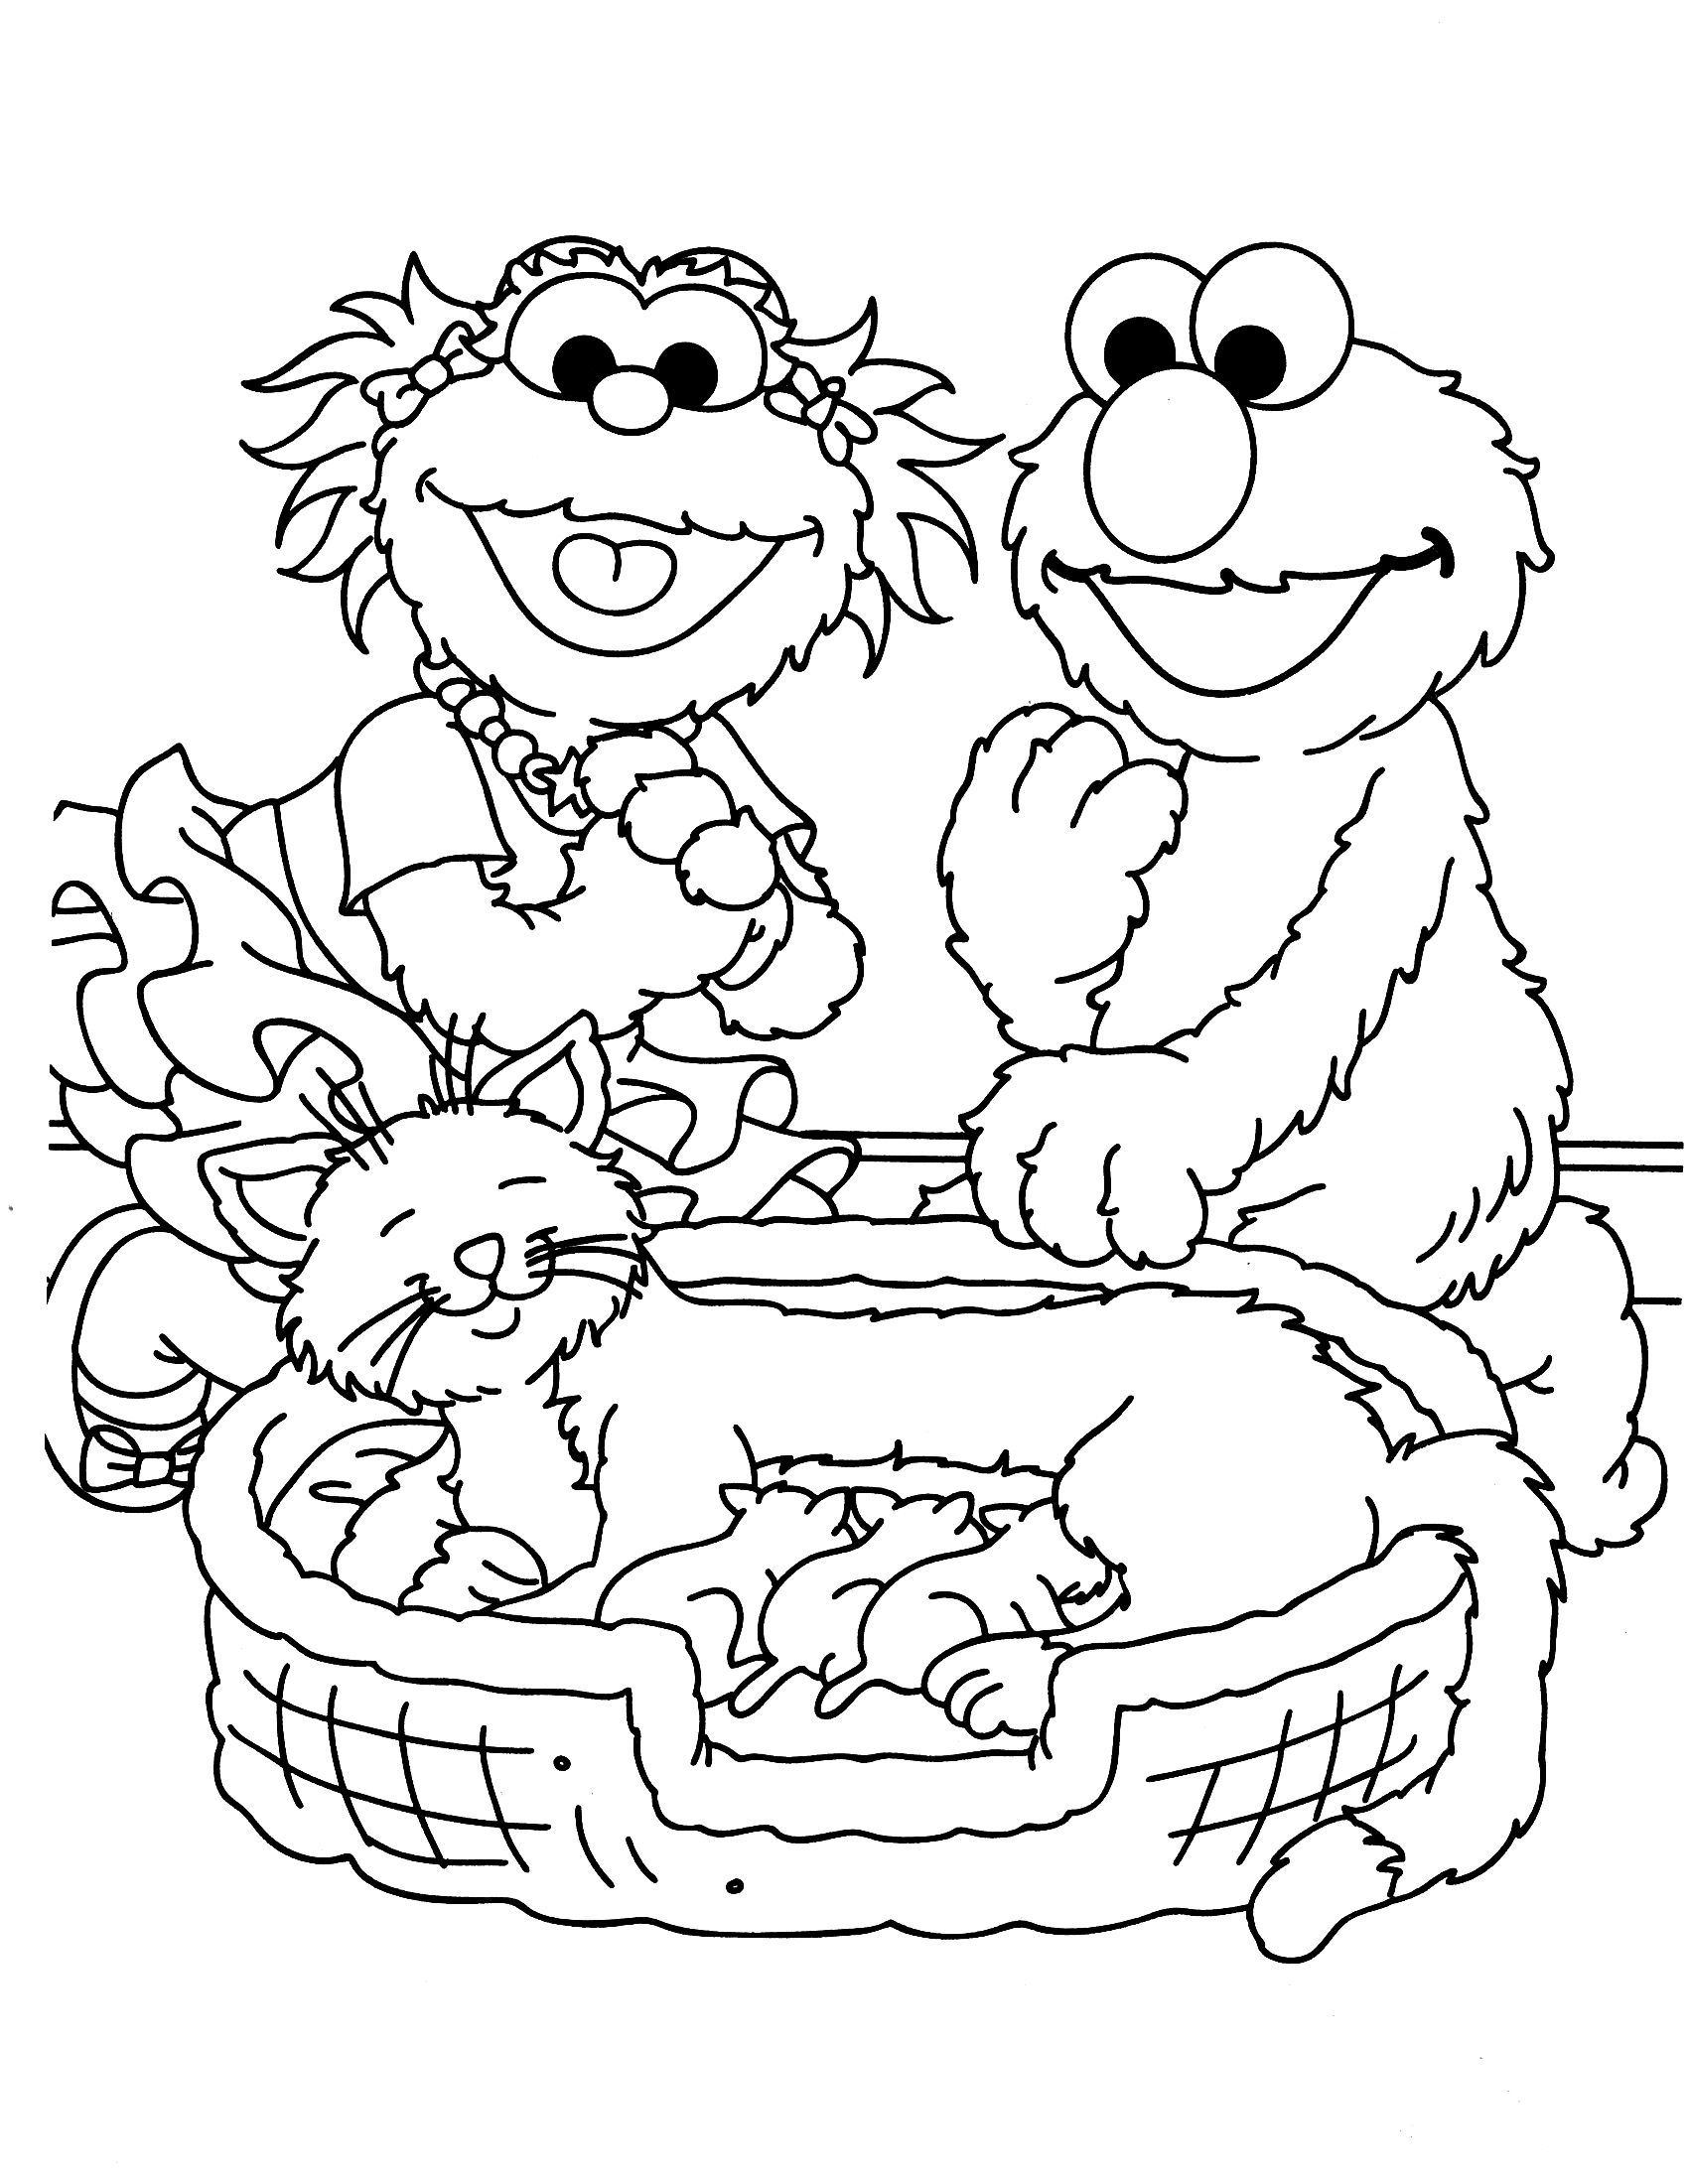 sesame street coloring pages - Bing Images | Ann\'s Coloring Pages ...